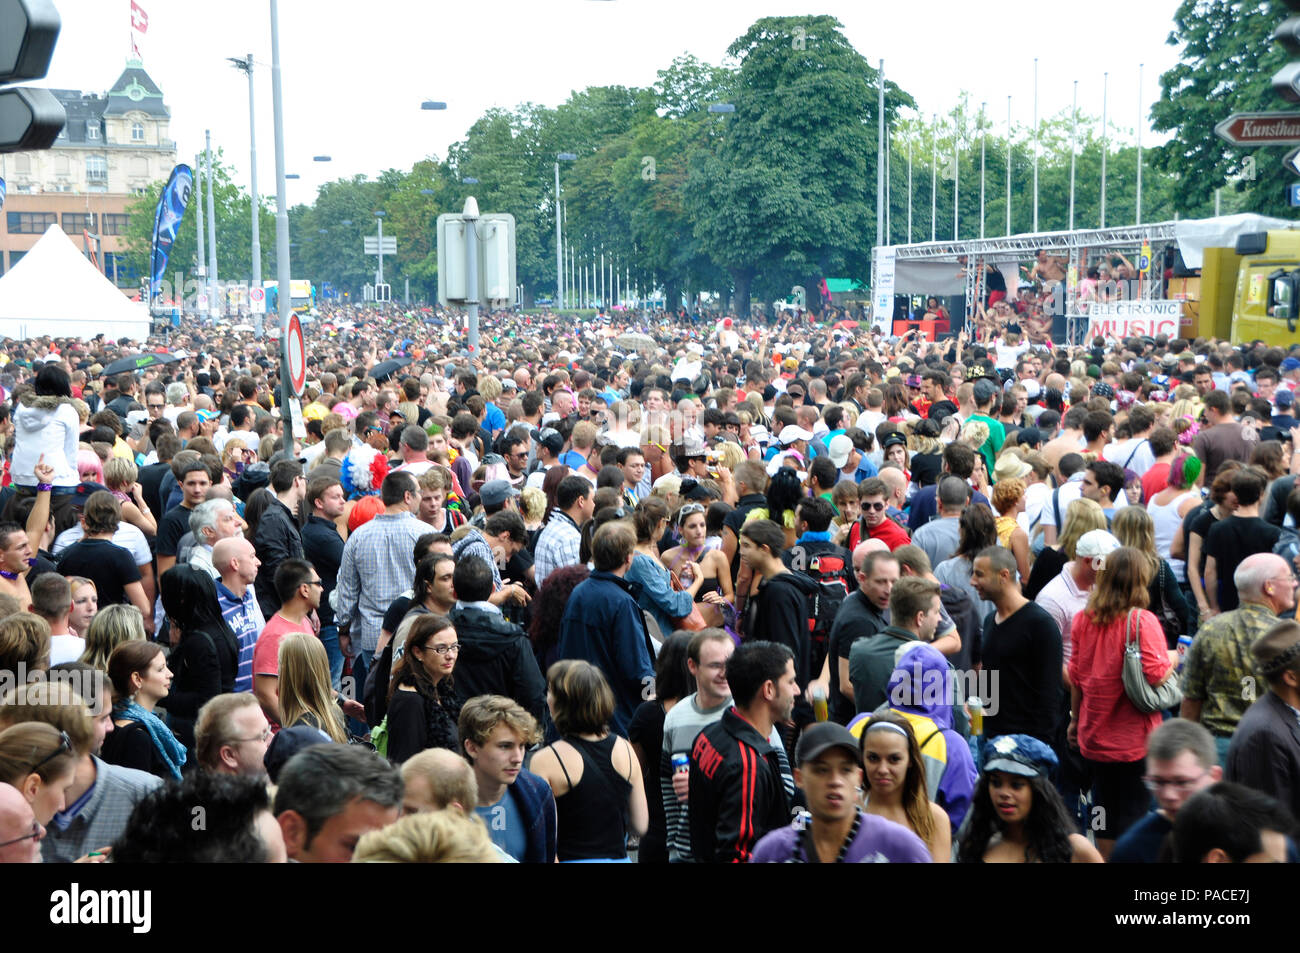 Streetparade Zürich: The Masses of peoples are a big challenge for